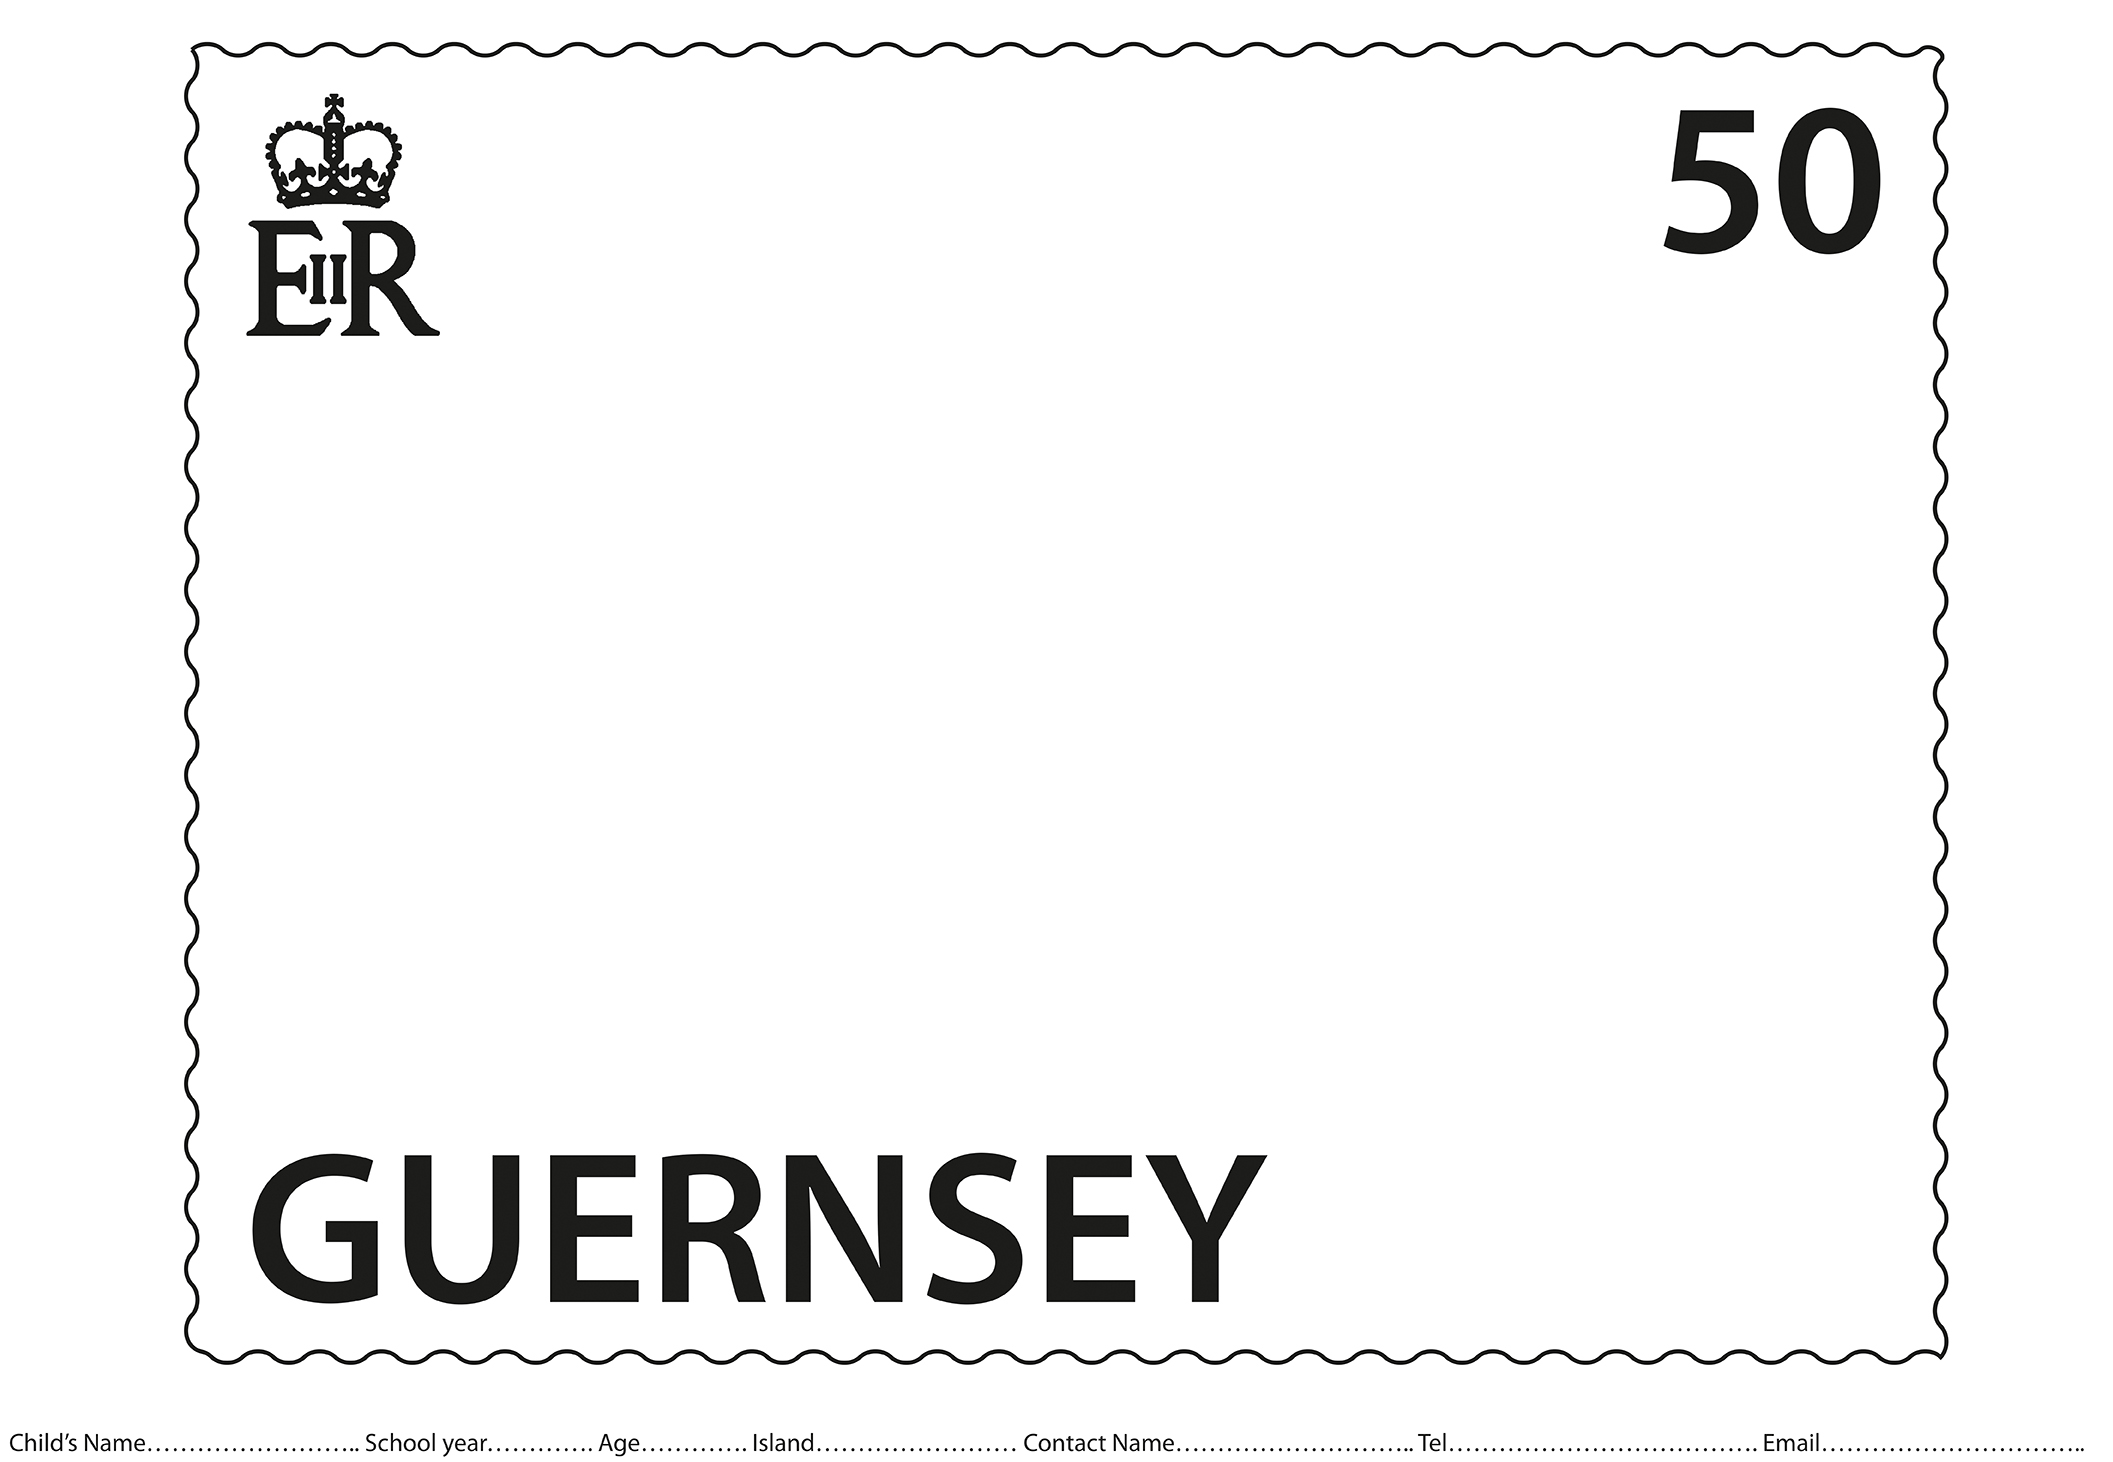 Local children invited to put their stamp on #GuernseyTogether charity competition